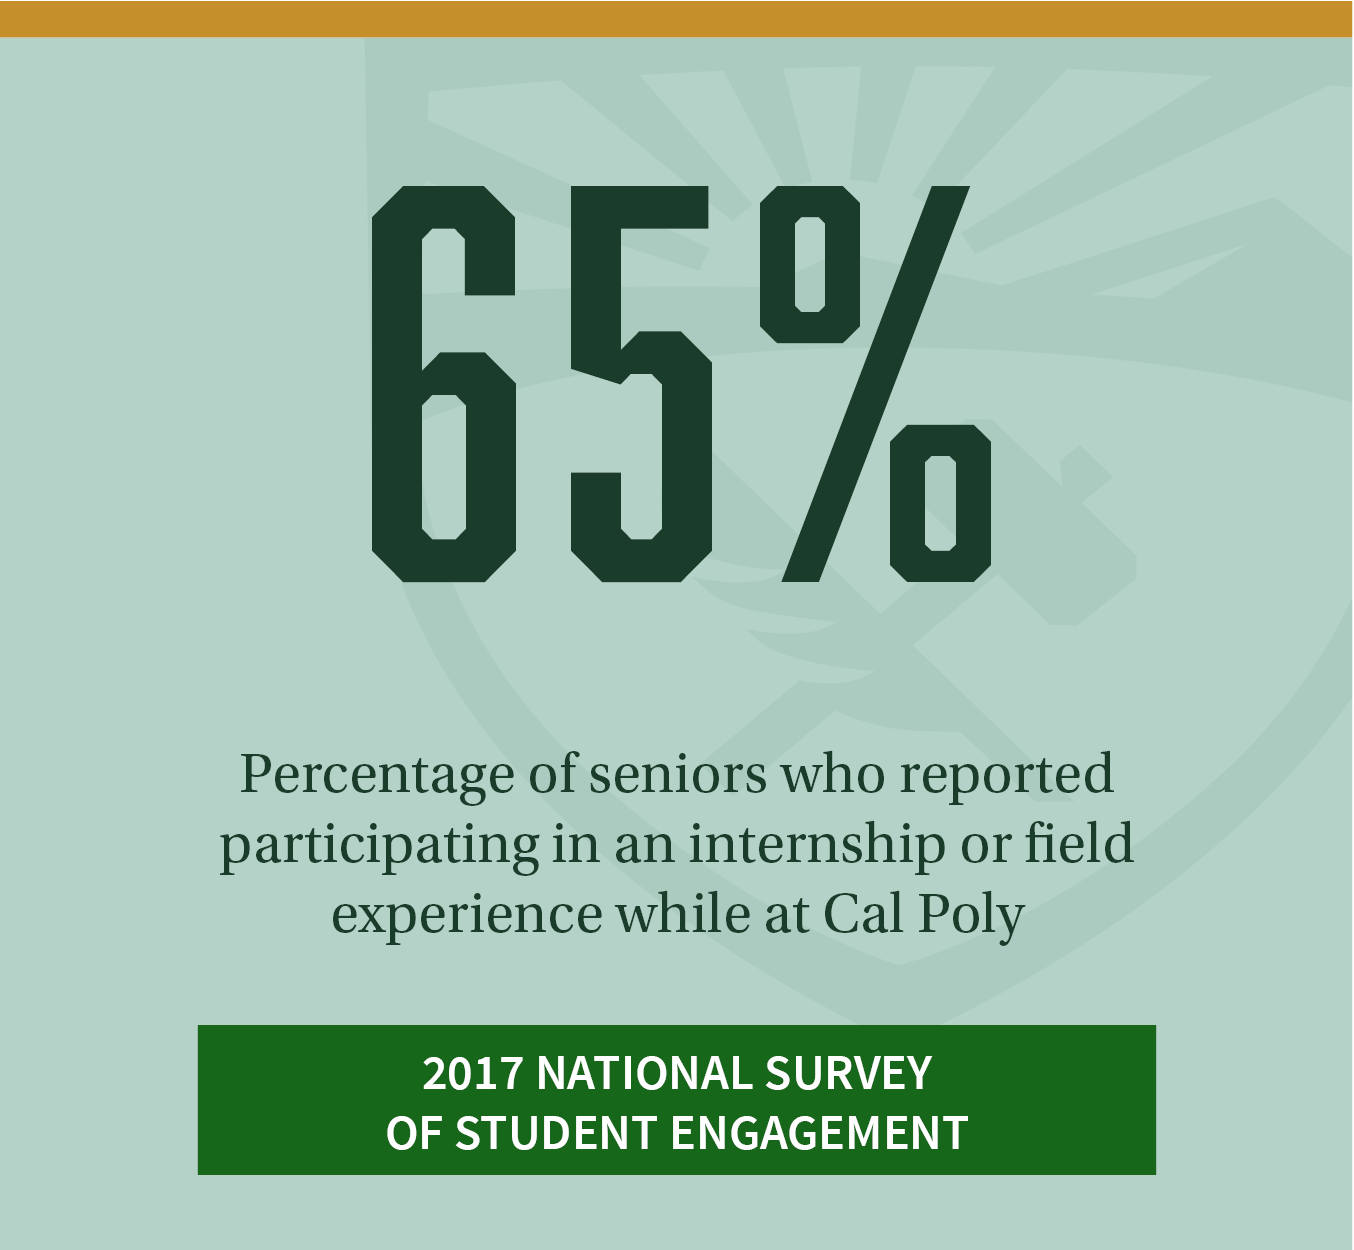 65%. Percentage of seniors who reported participating in an internship or field experience while at Cal Poly. Click to review more Cal Poly student responses in the 2017 National Survey of Student Engagement.